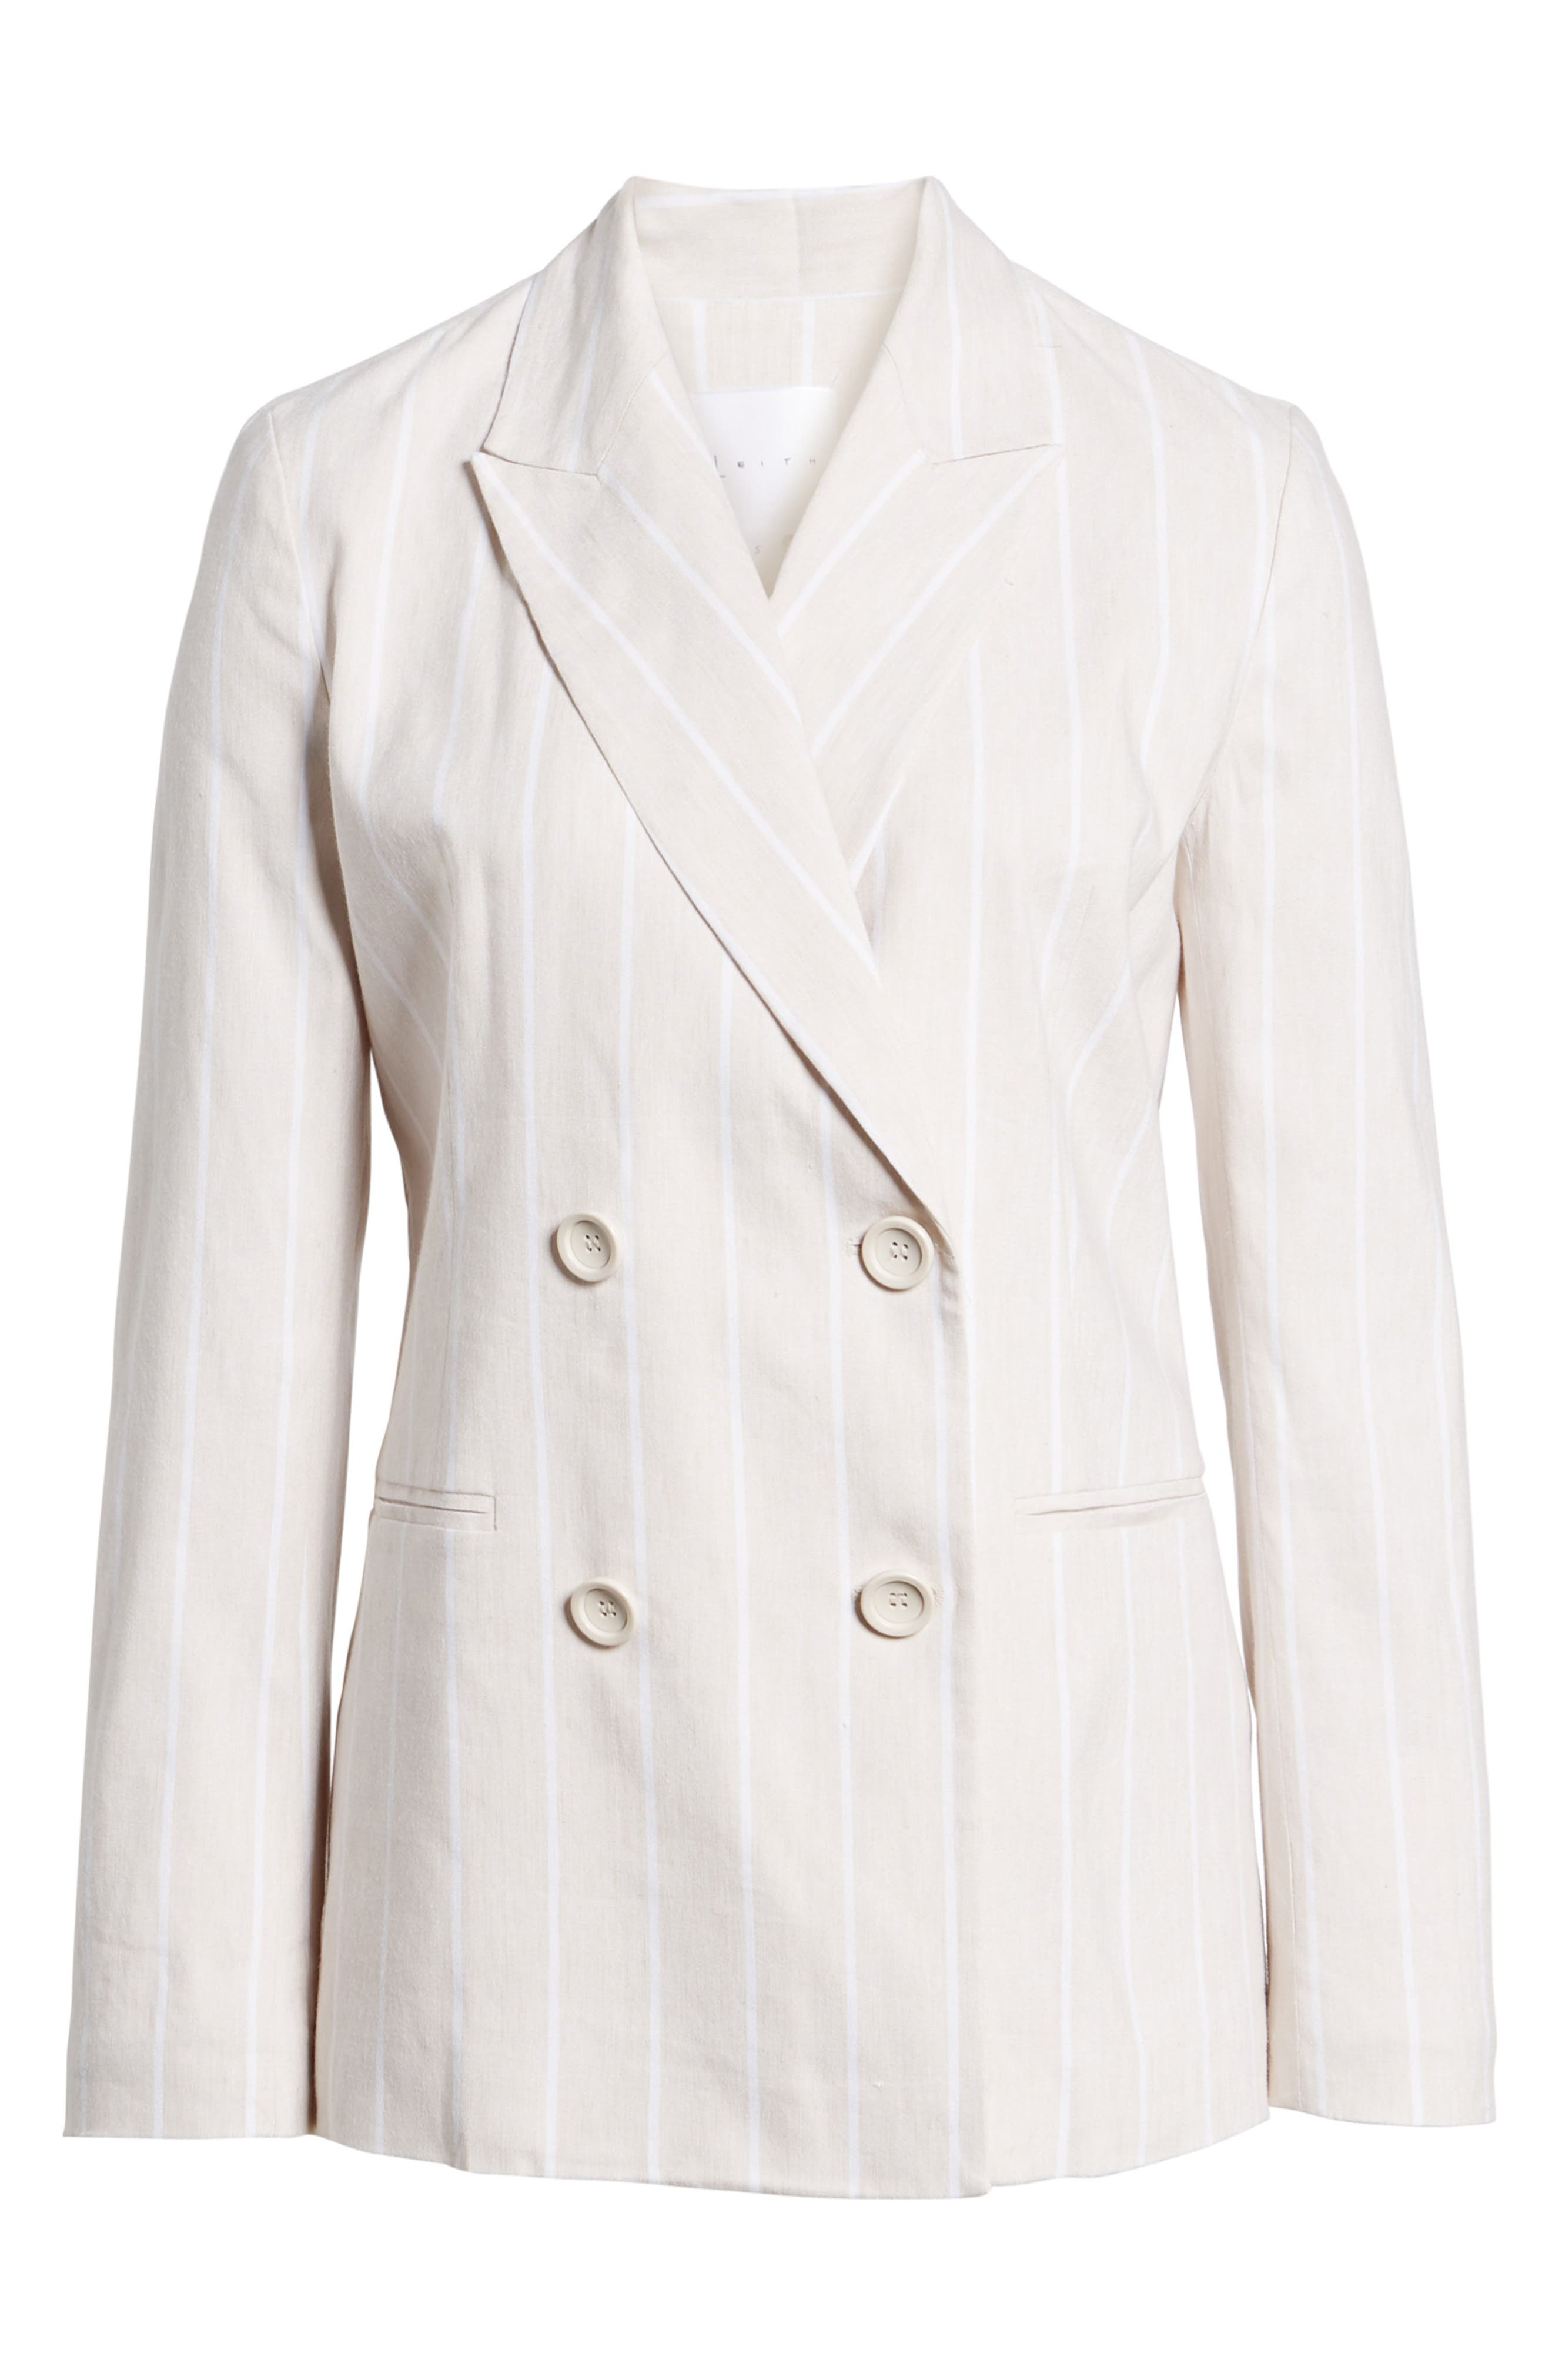 LEITH,                             Double Breasted Linen Blend Blazer,                             Alternate thumbnail 6, color,                             260